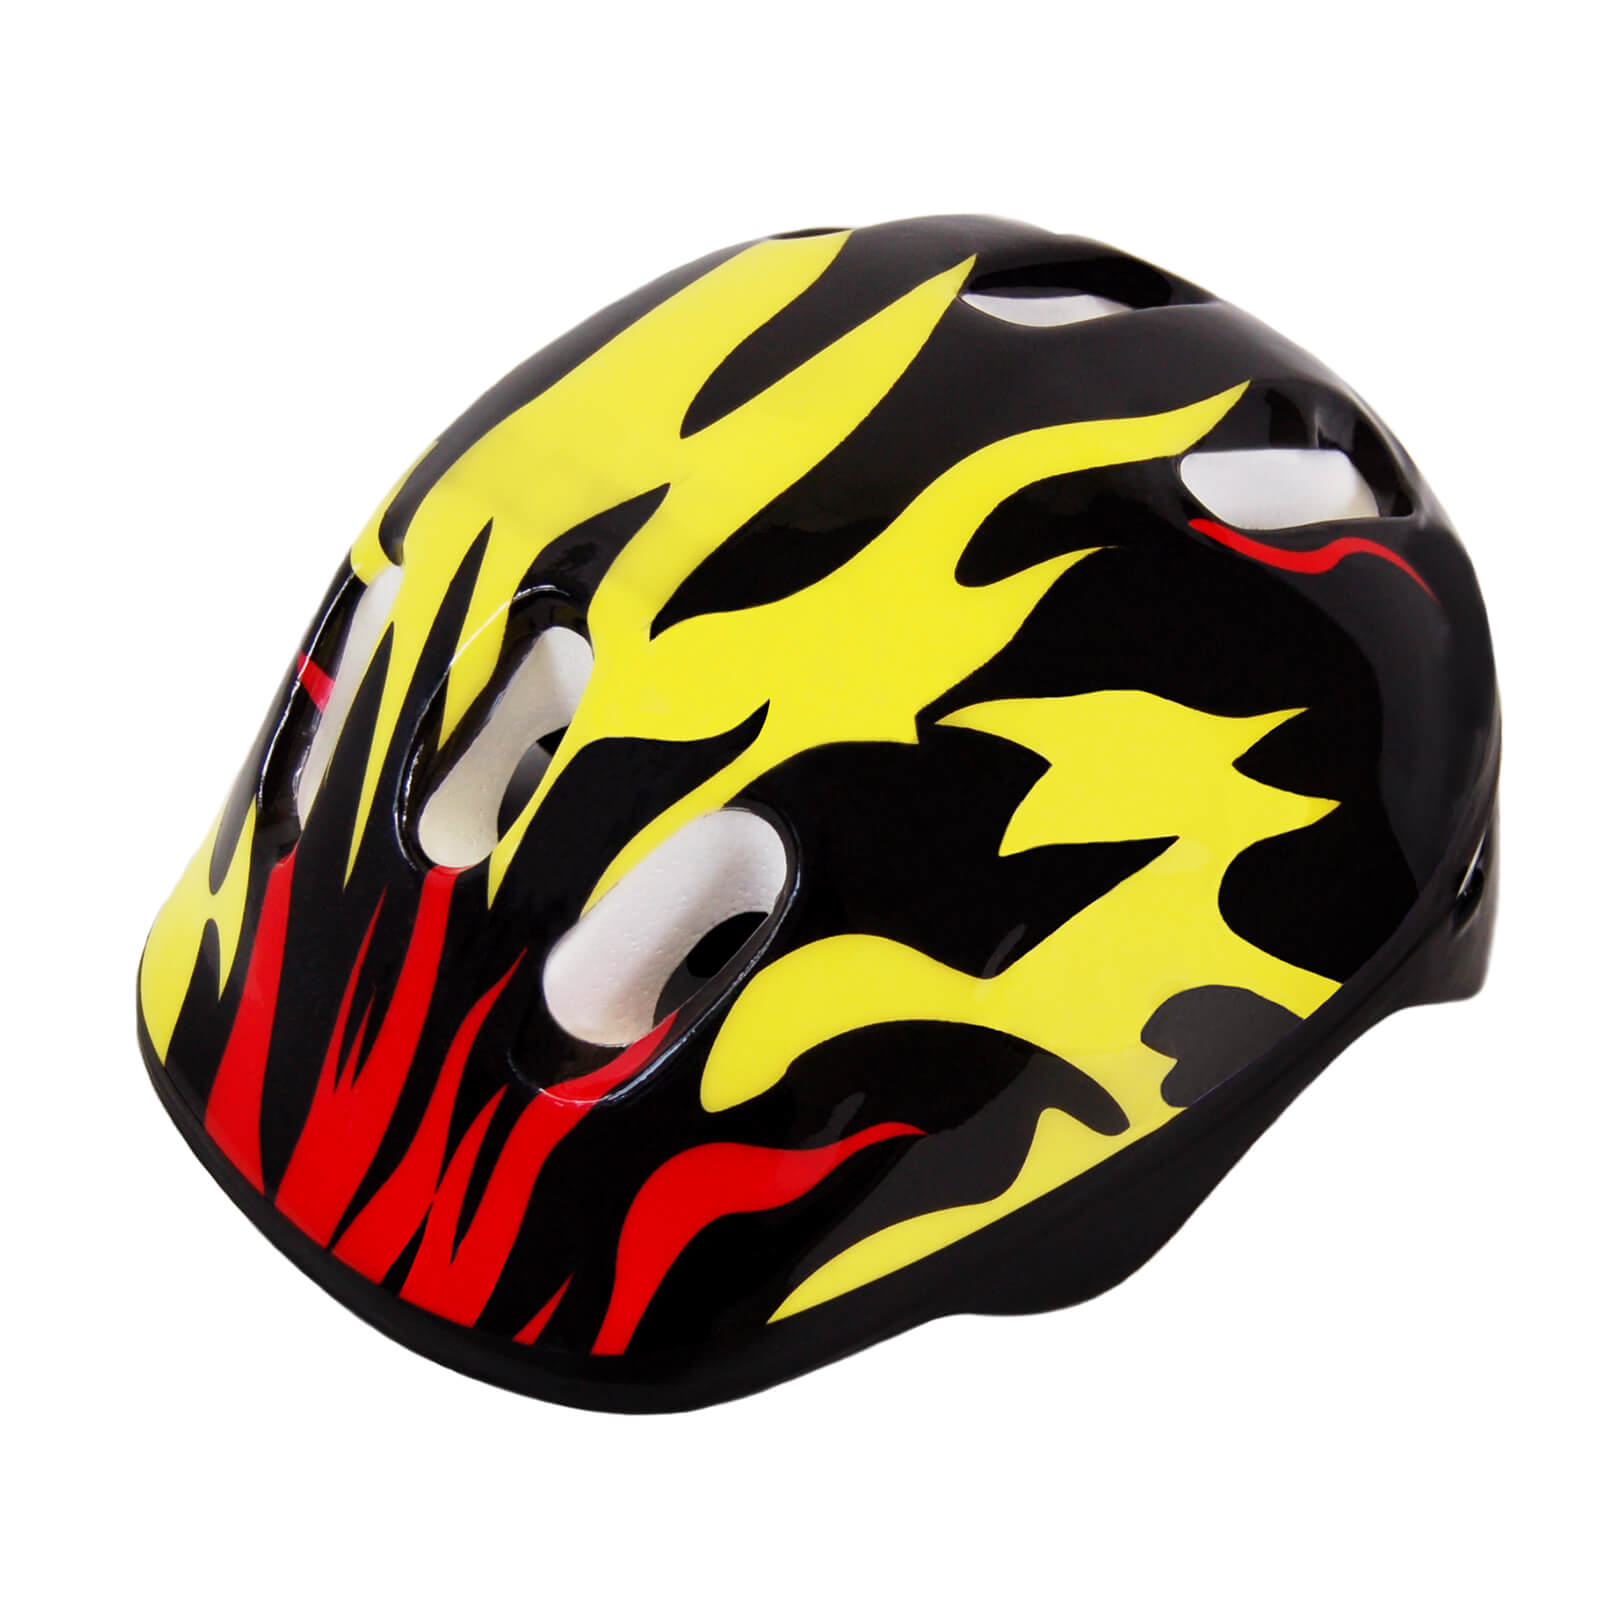 Scale Sports Adjustable Fitting Size M Kids Bike Protective Helmet, Flame Pattern